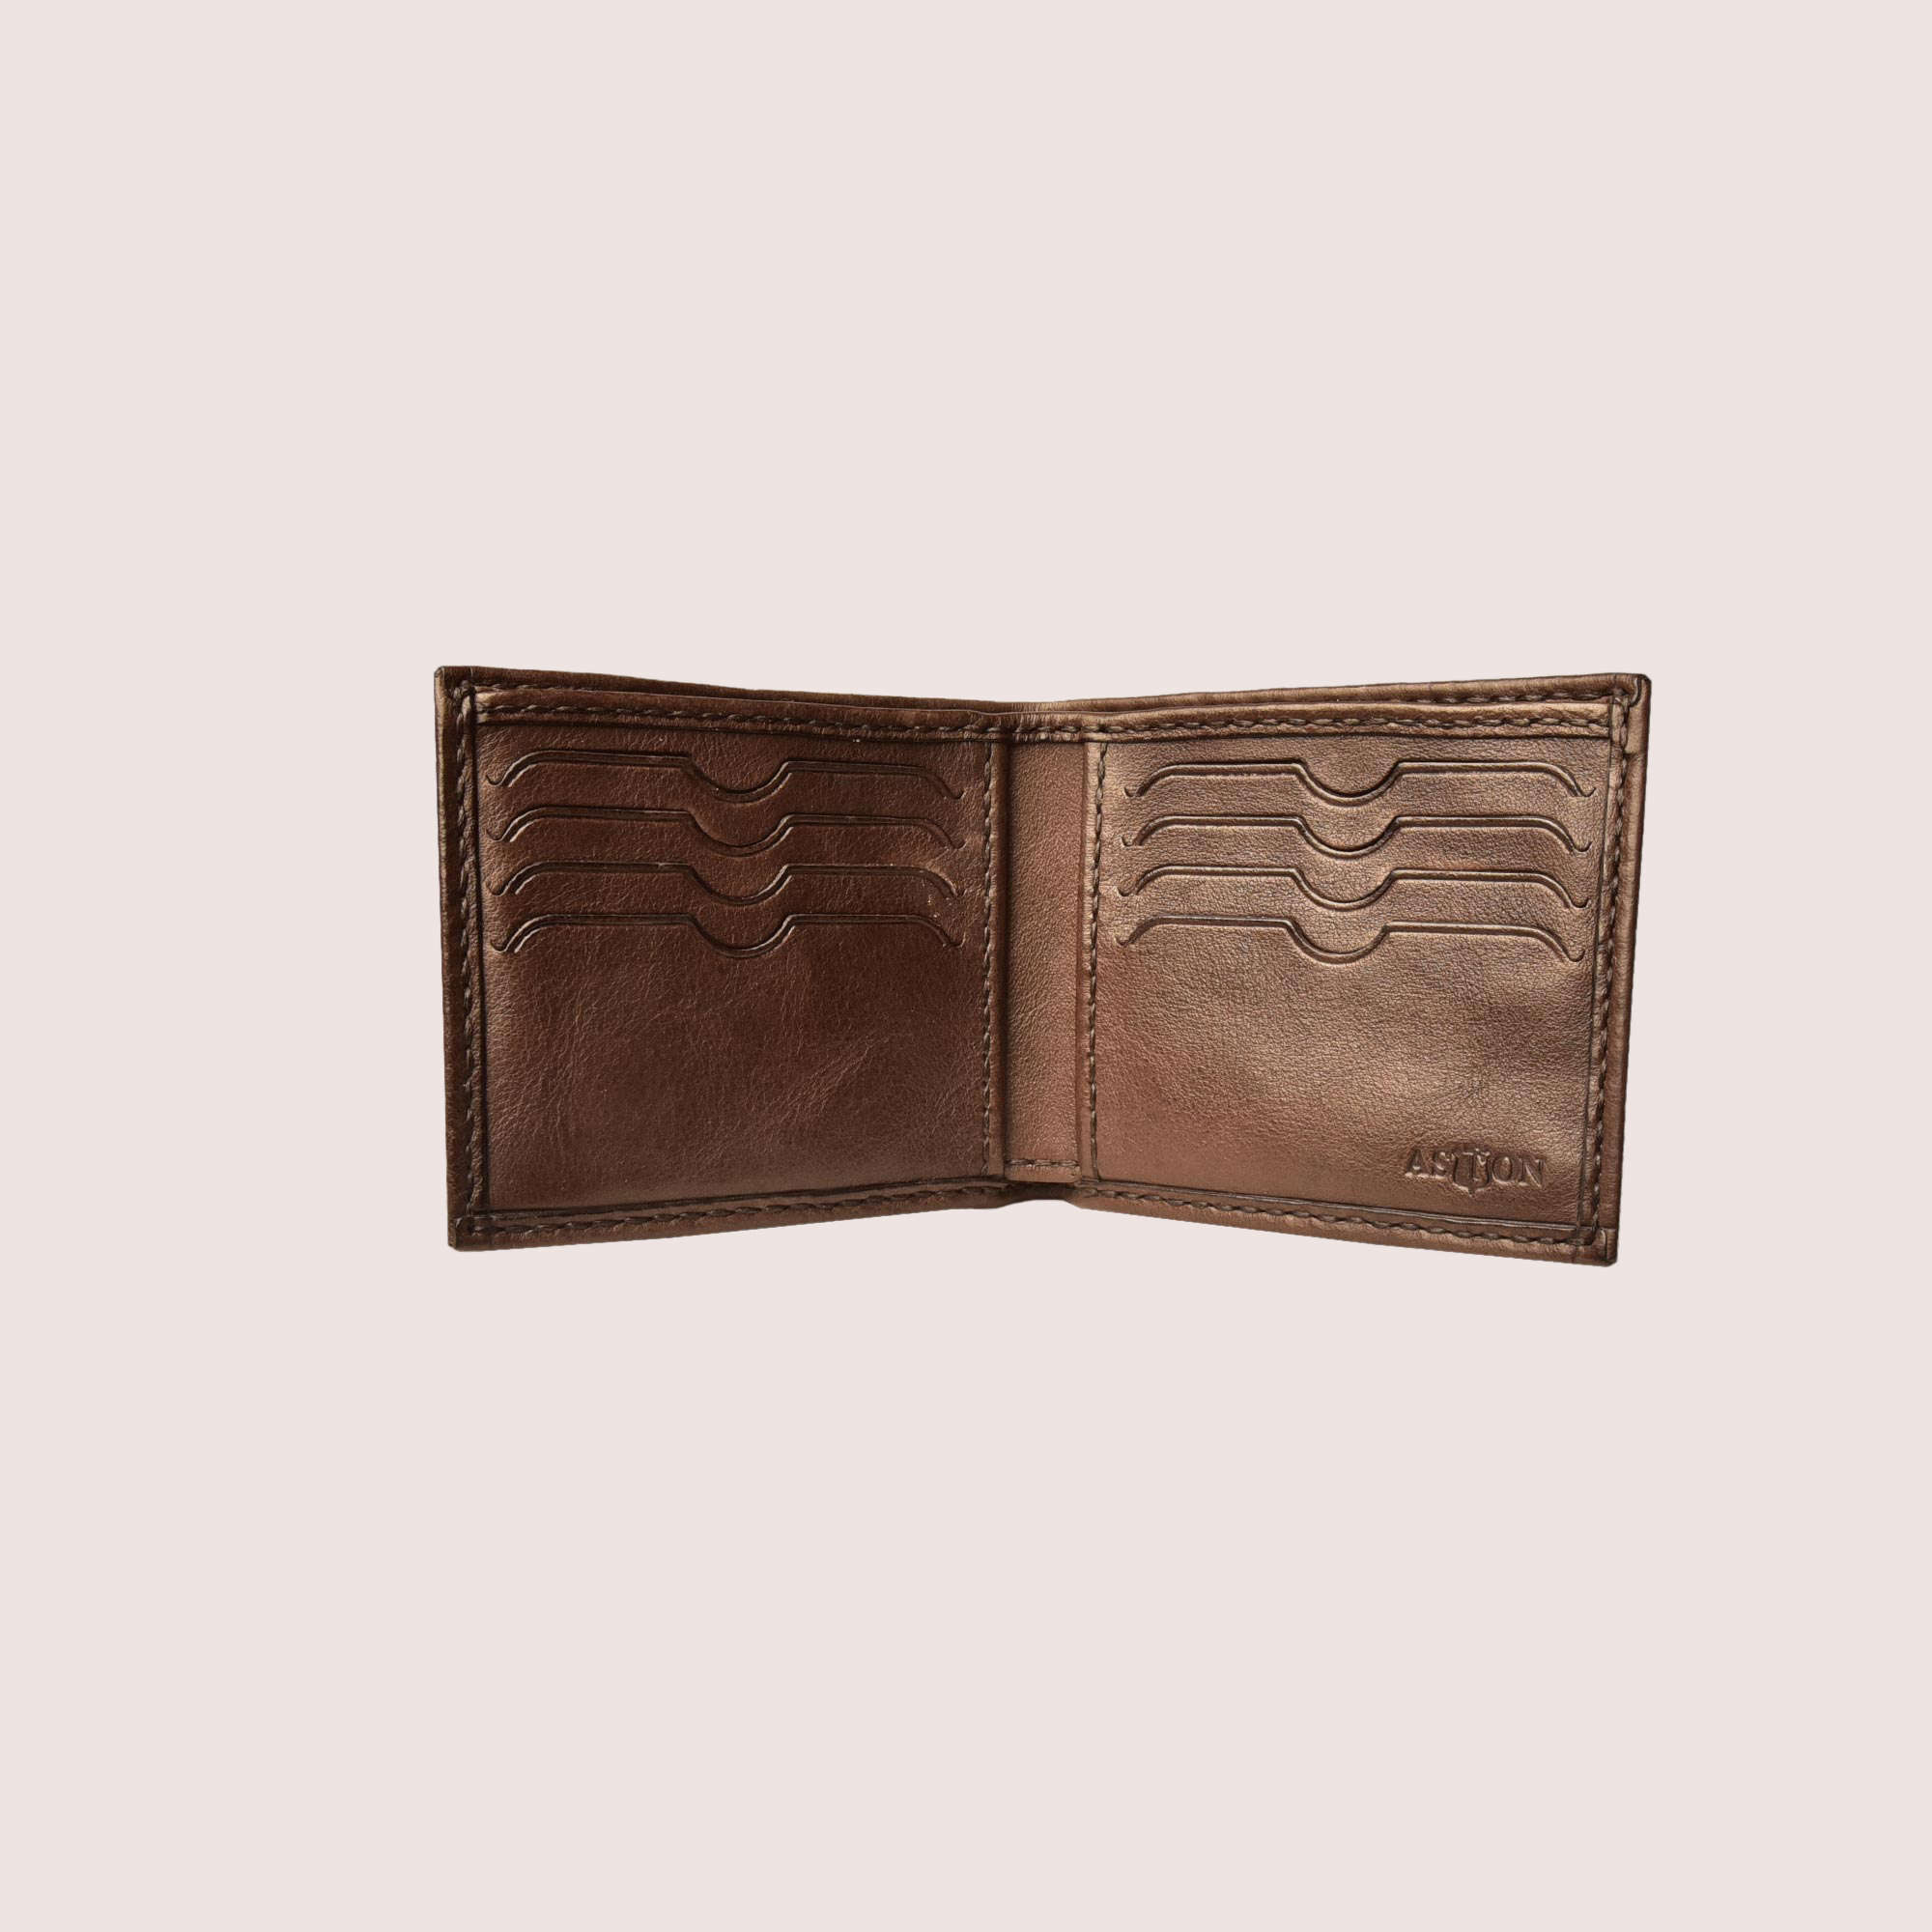 Fitzgerald Hand-Stitched Wallet